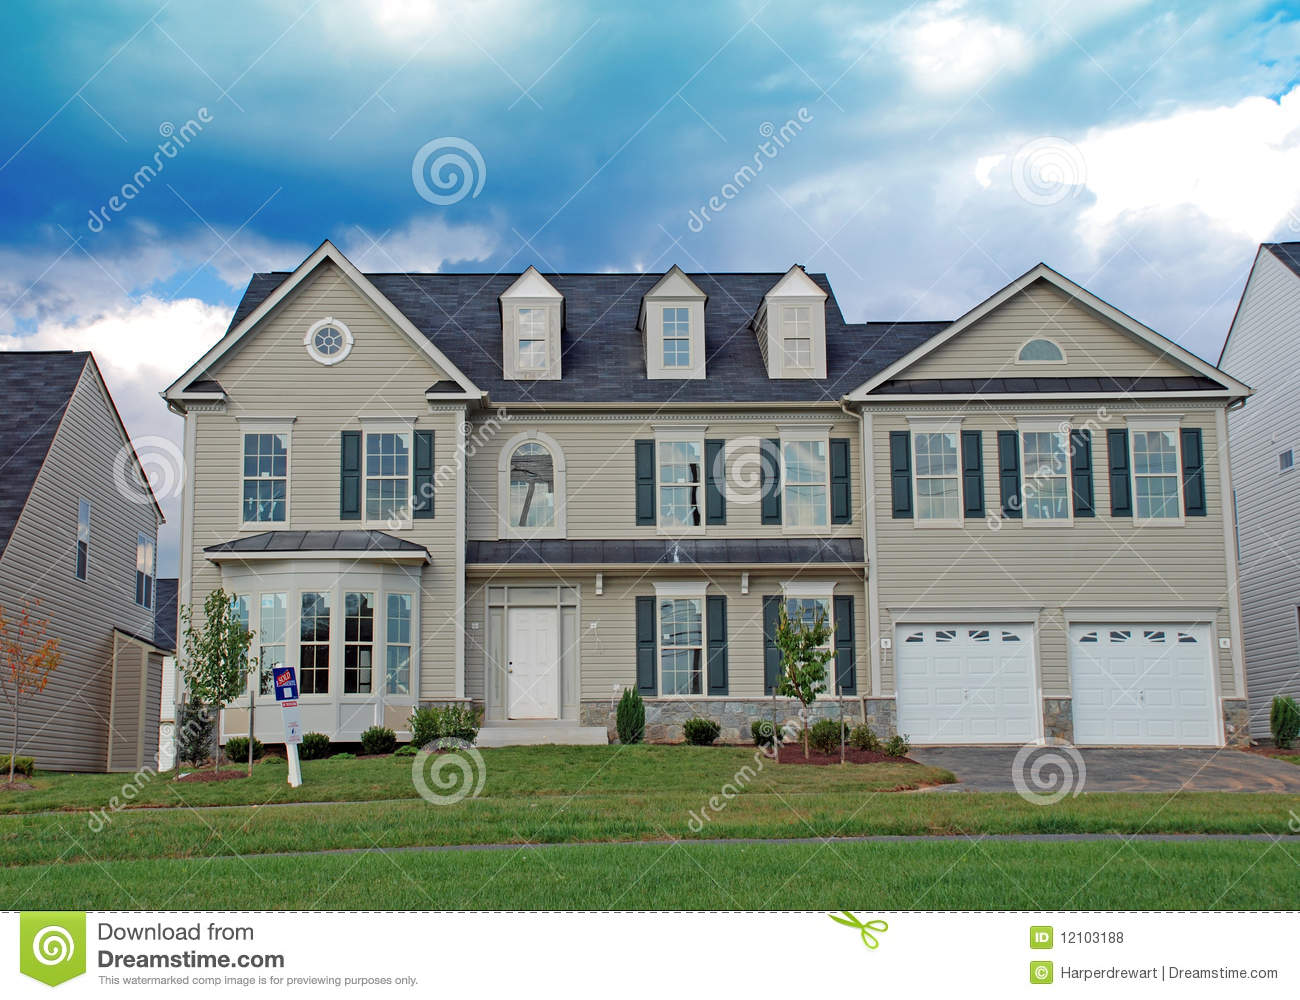 Luxury home under construction 5 royalty free stock photo for Free luxury home images